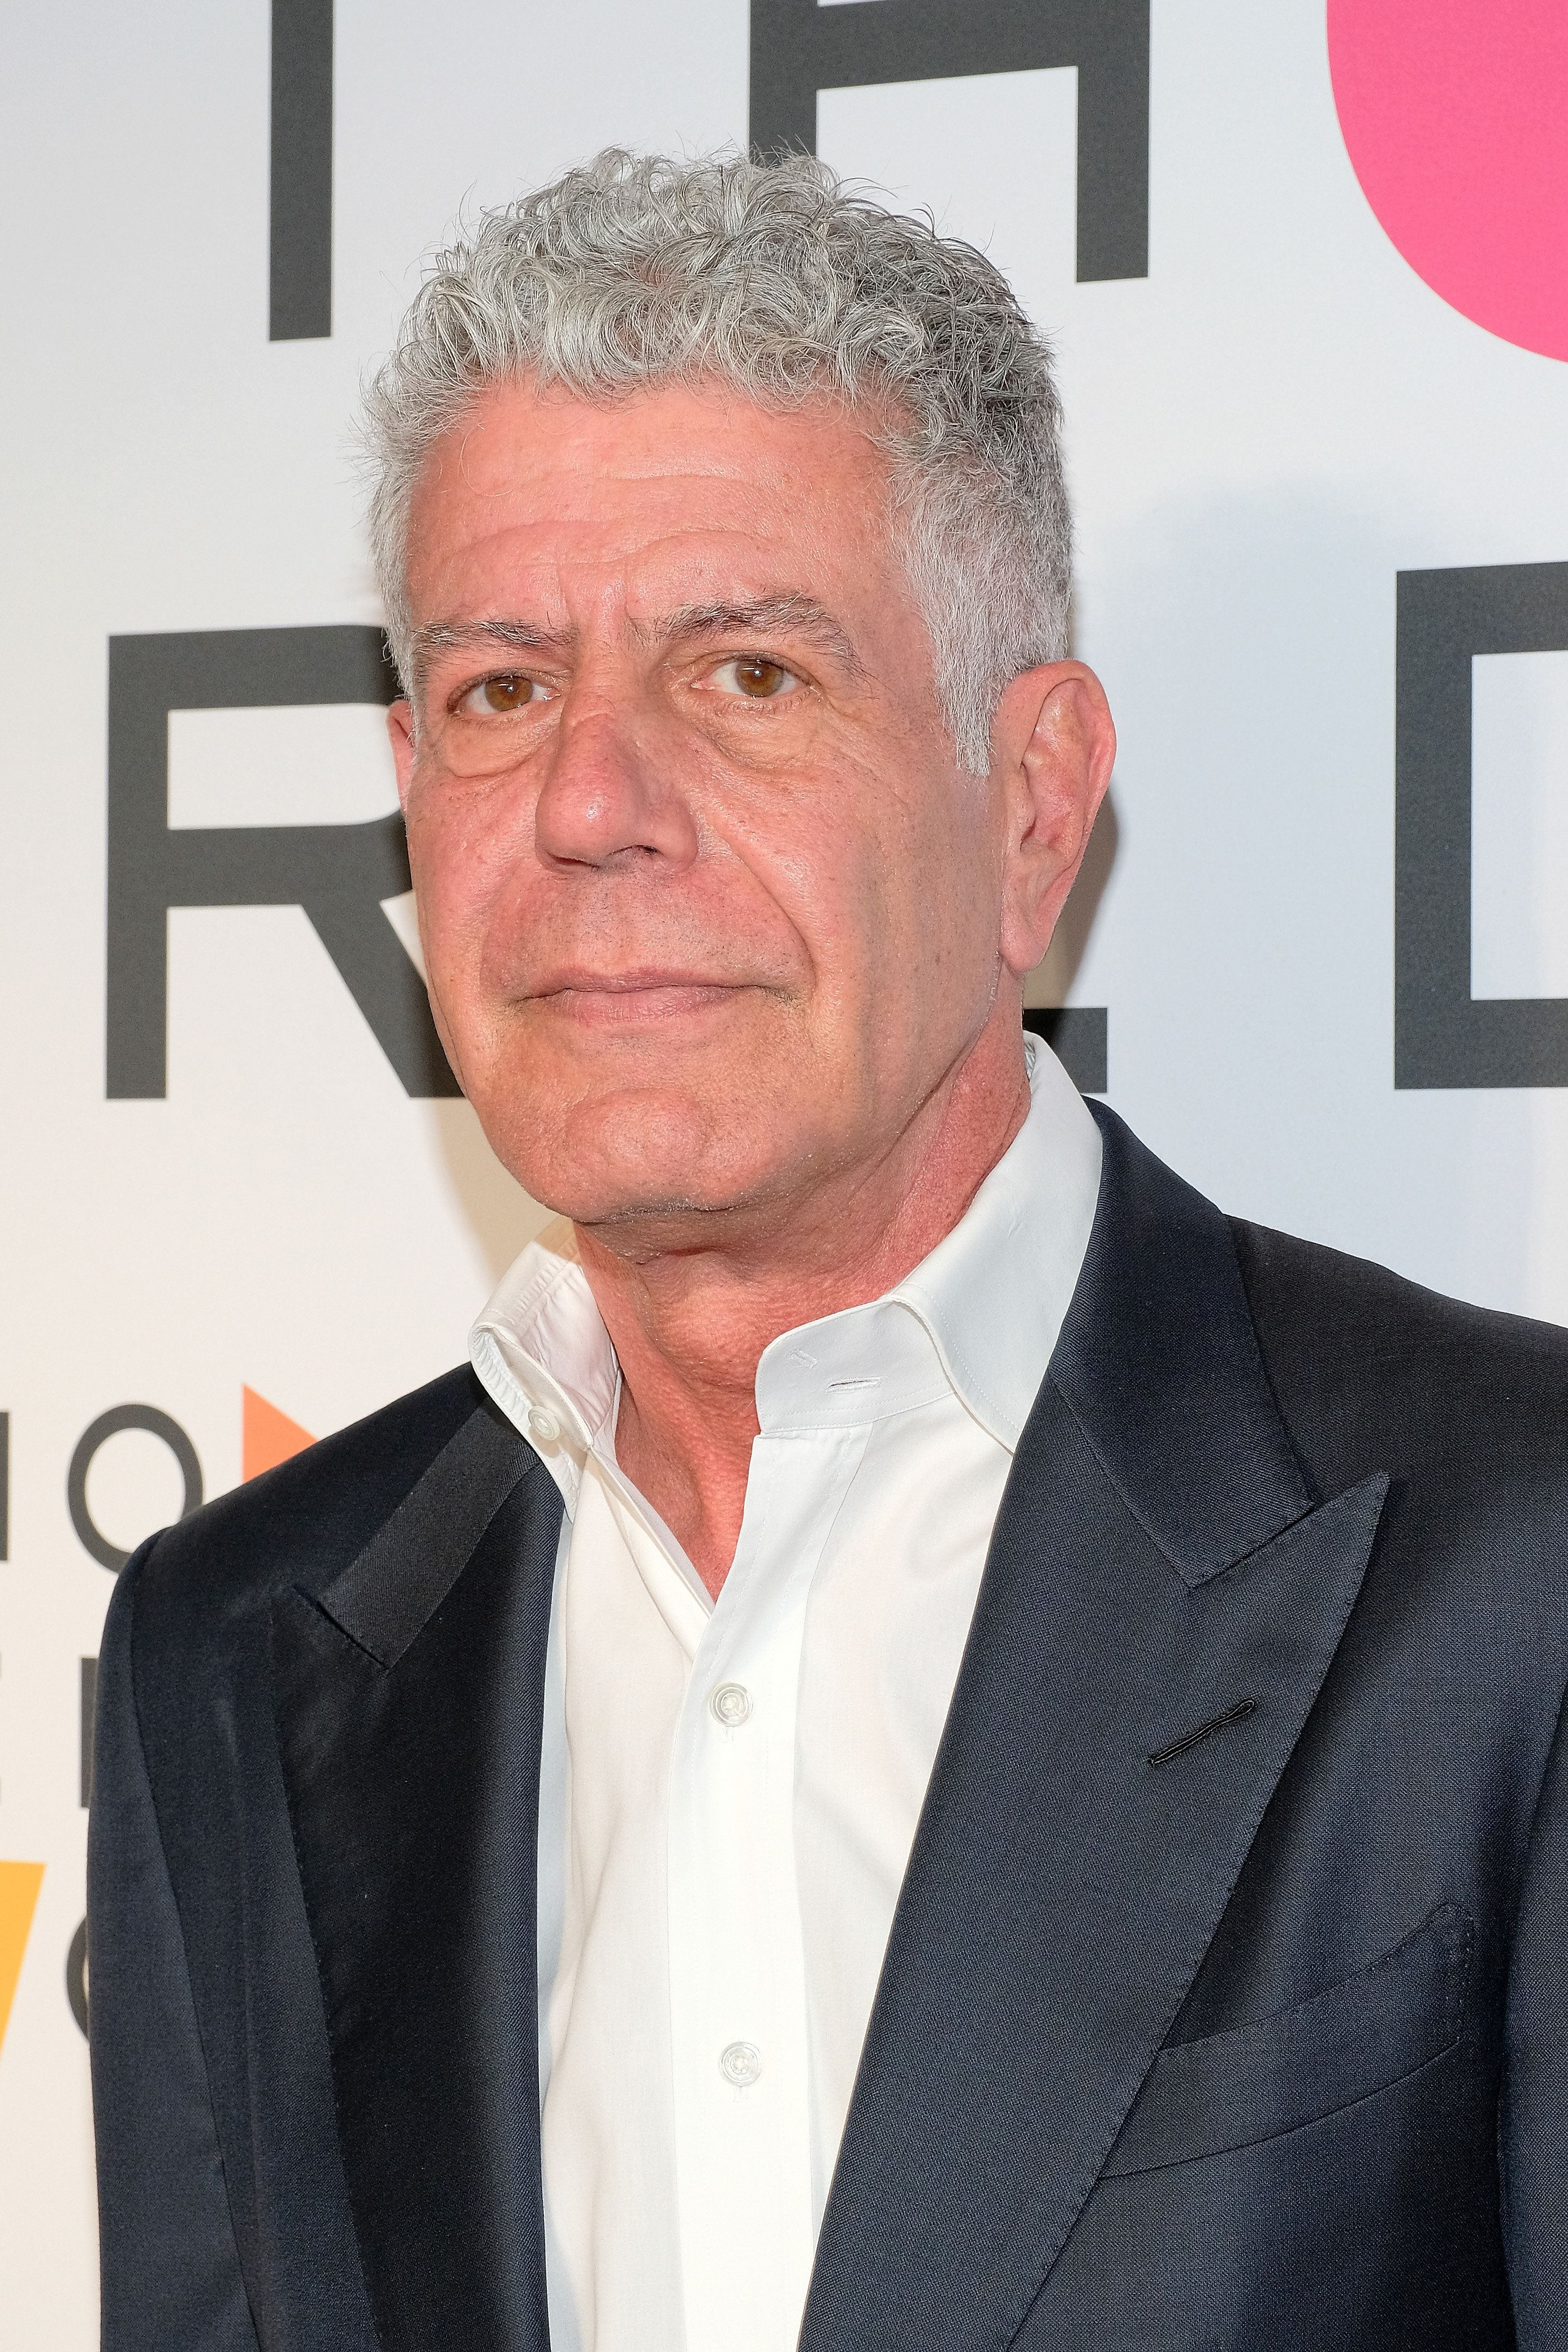 NEW YORK, NY - APRIL 12:  Chef Anthony Bourdain attends the 2018 Women In The World Summit at Lincoln Center on April 12, 2018 in New York City.  (Photo by Matthew Eisman/Getty Images)